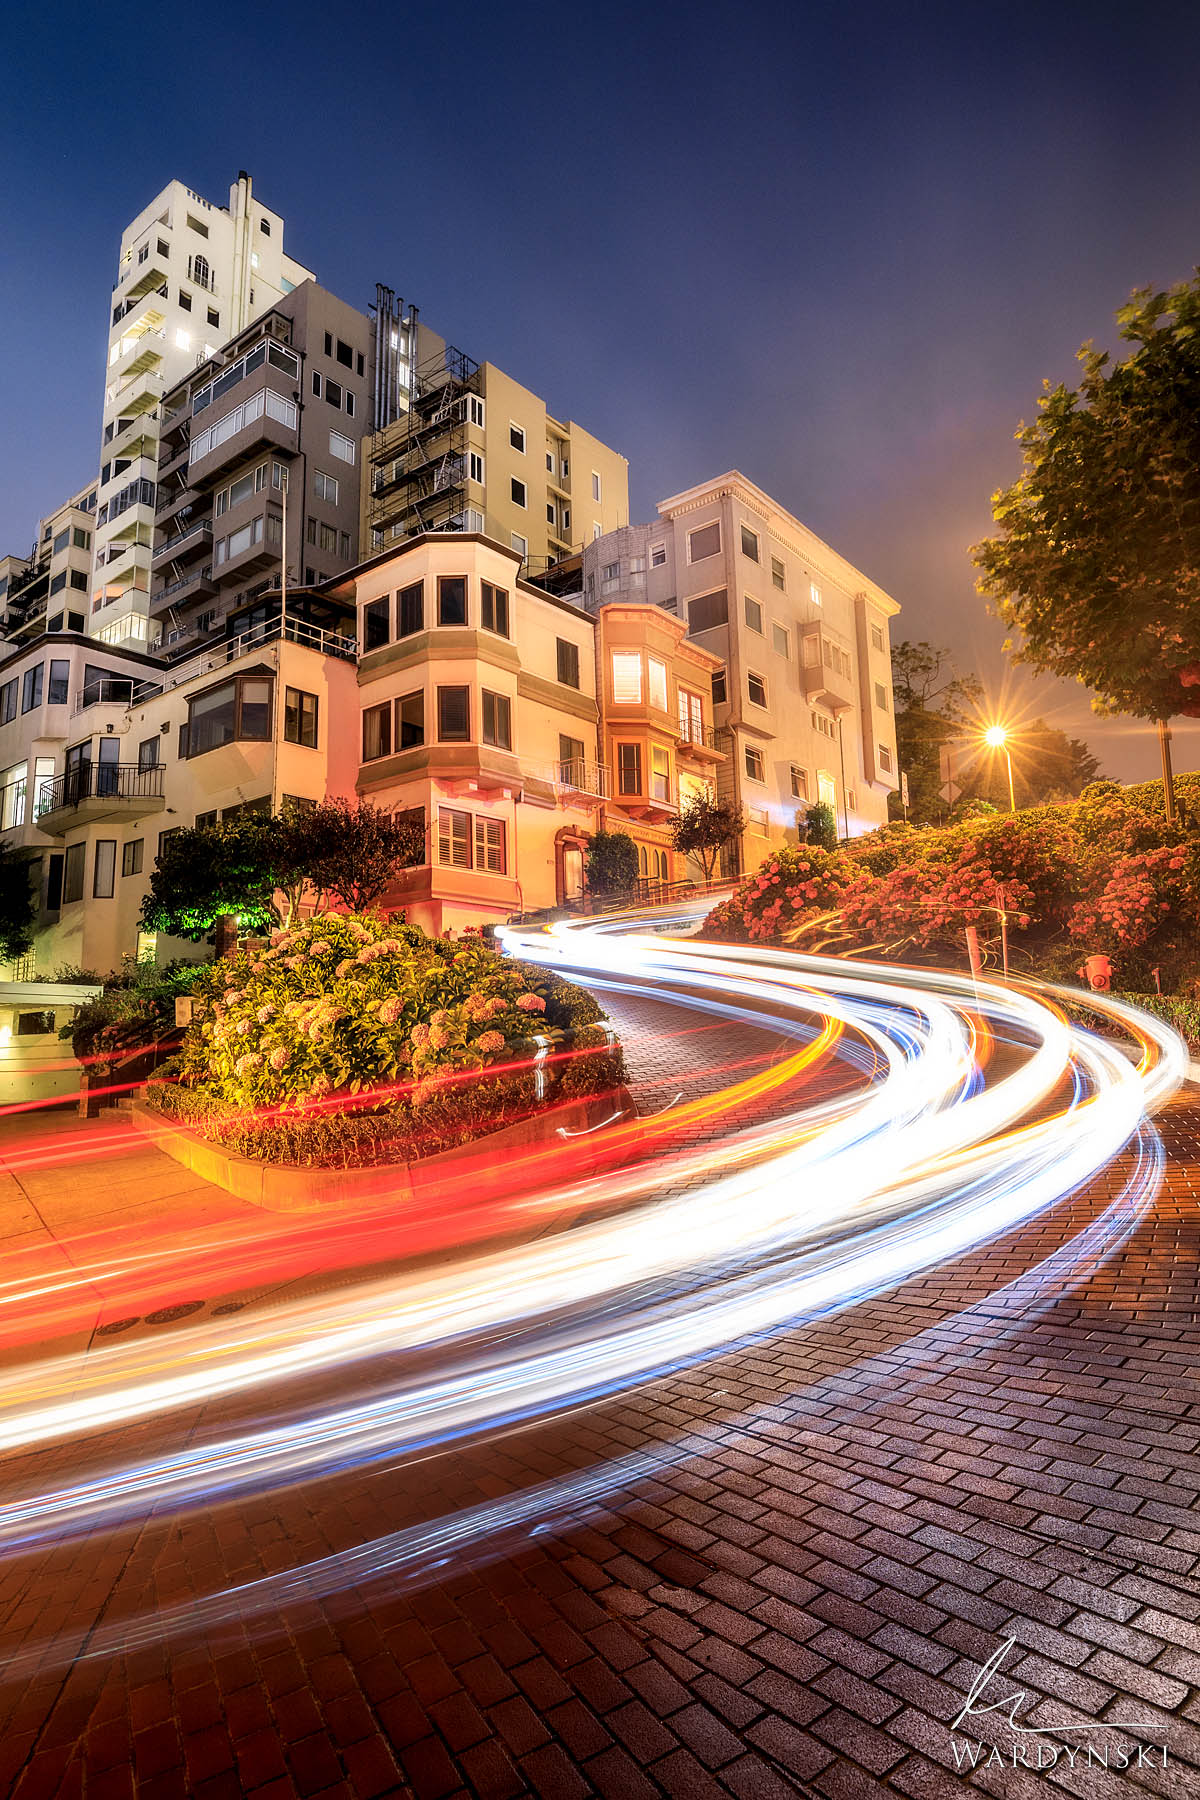 Fine Art Print | Limited Edition of 100  Trails of headlights zig zag down Lombard street in San Francisco, California. The famous...